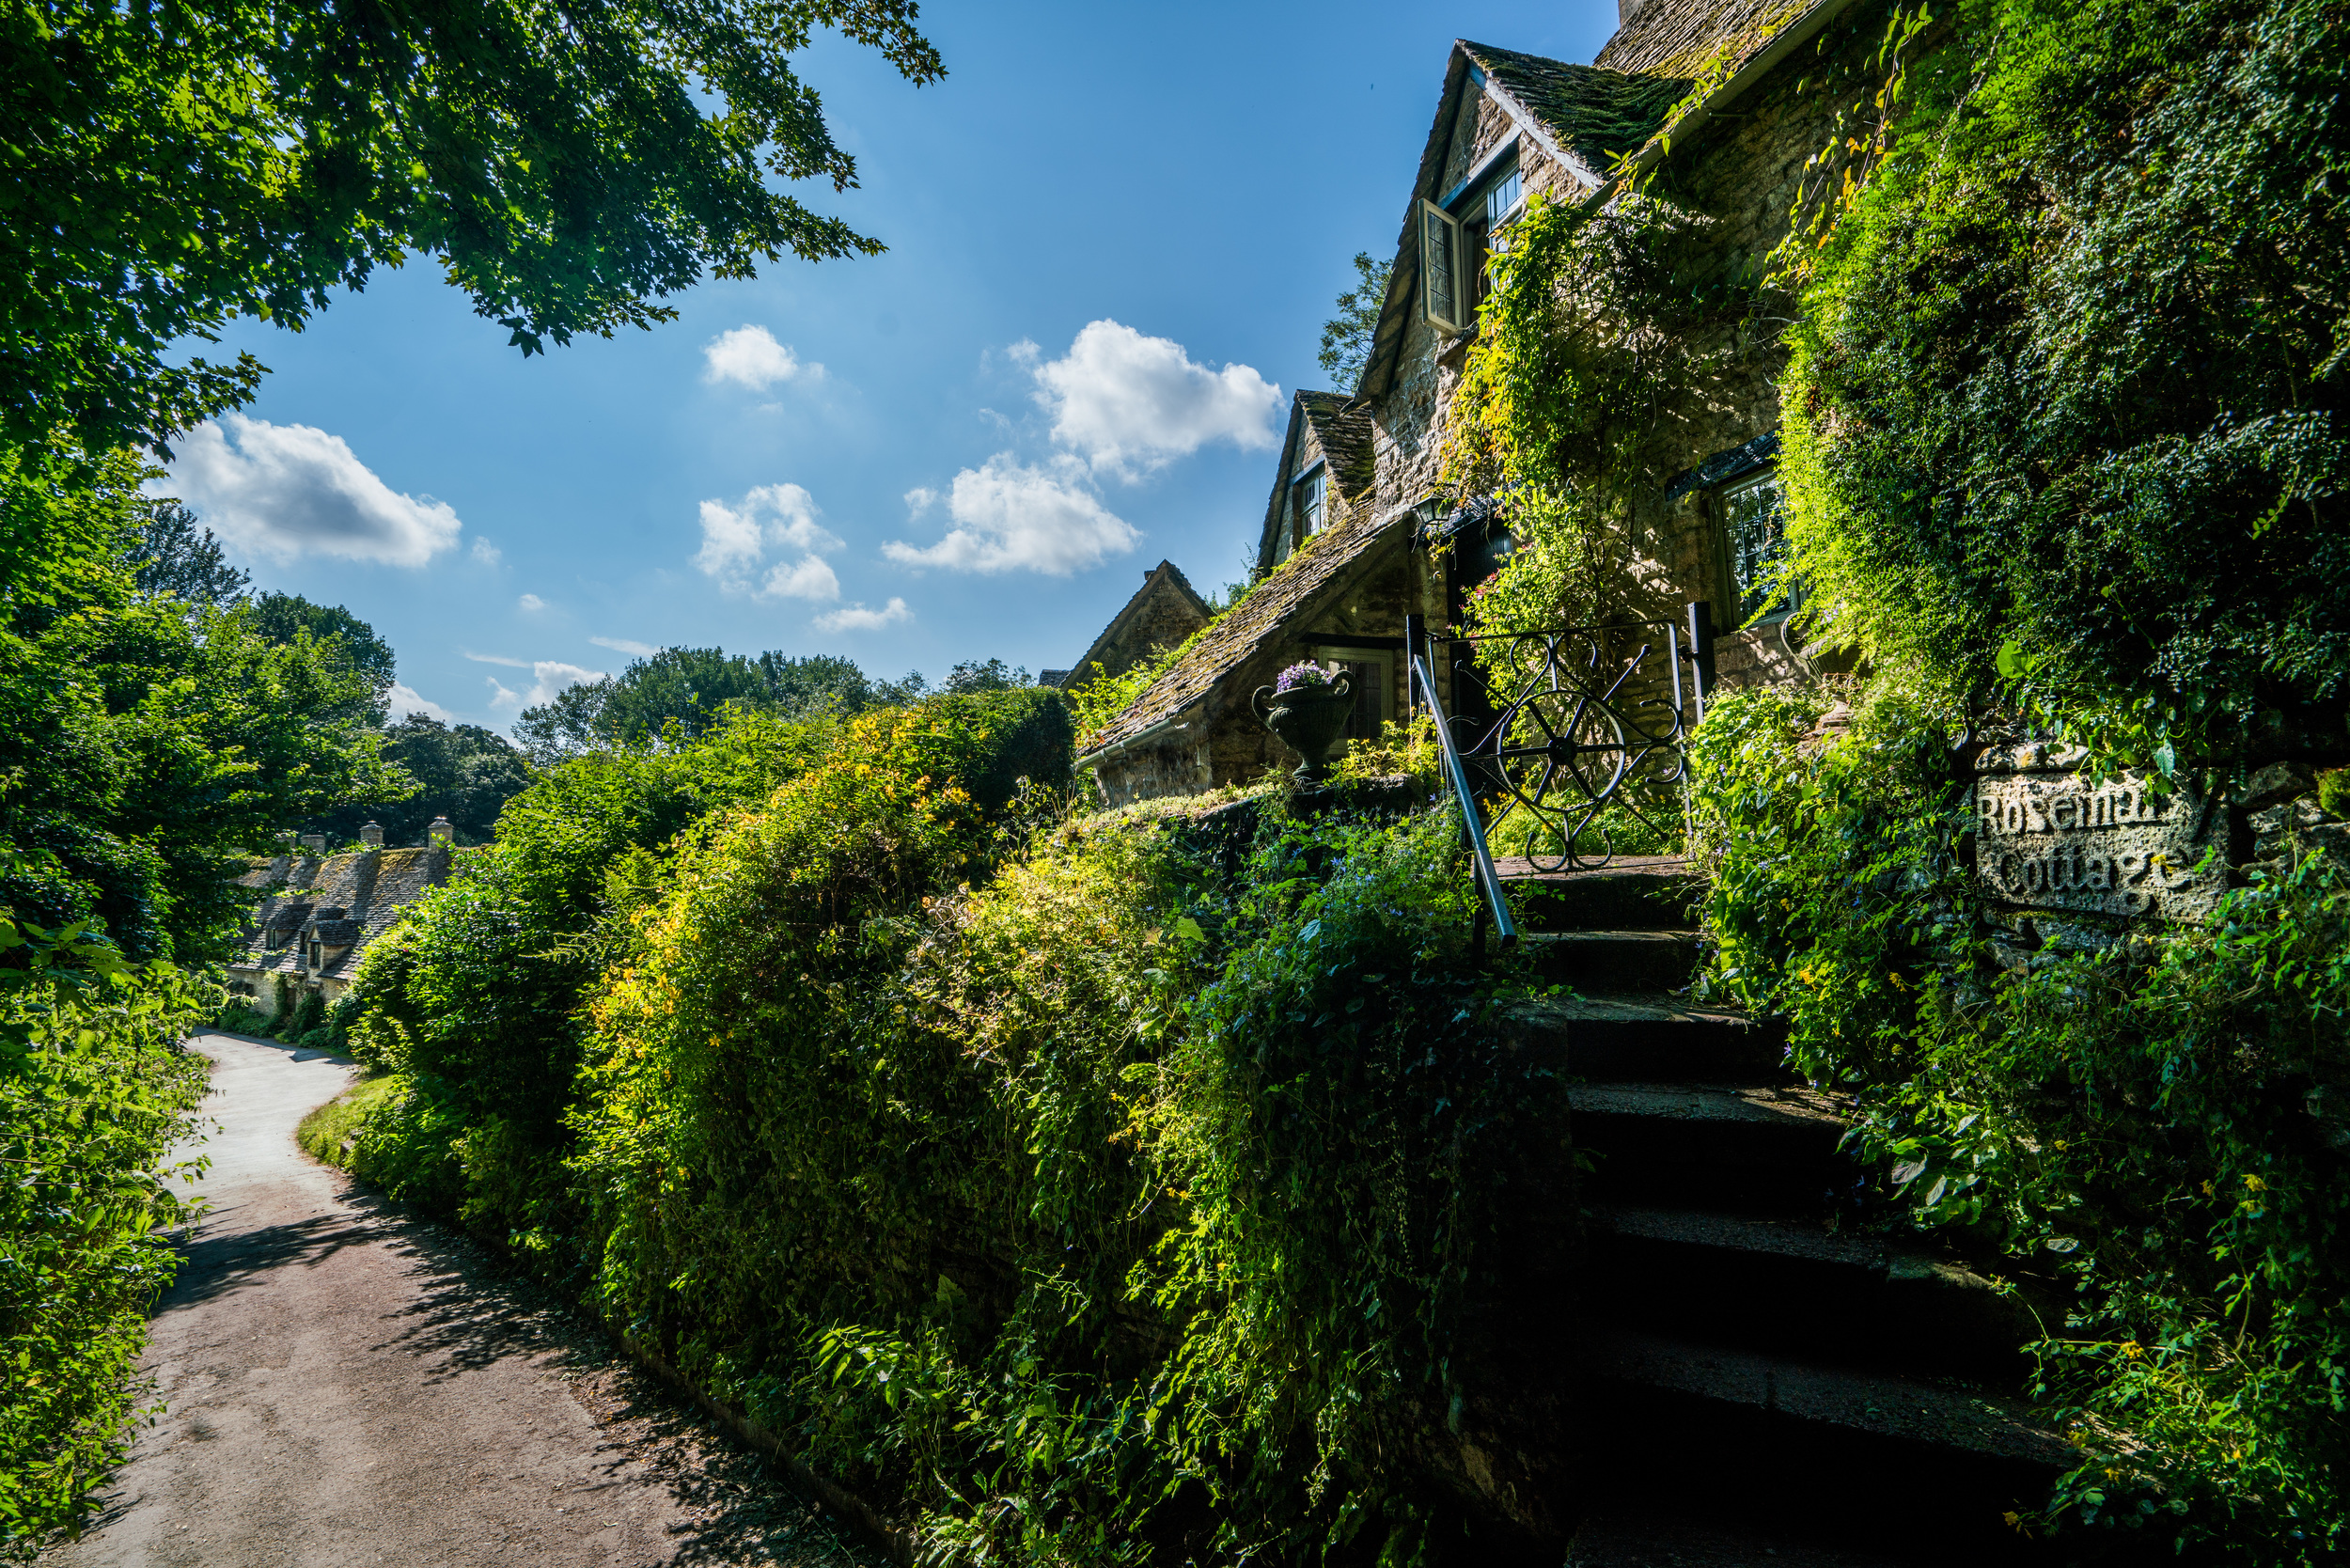 Rosemary Cottage (see the sign?), Arlington Row, Bibury, Cotswolds AONB, England, UK. Sony A7rII, Sony 16-35mm f/4 at 16mm, ISO 100, f/8, 1/320th. Edited in Lightroom and Photoshop.